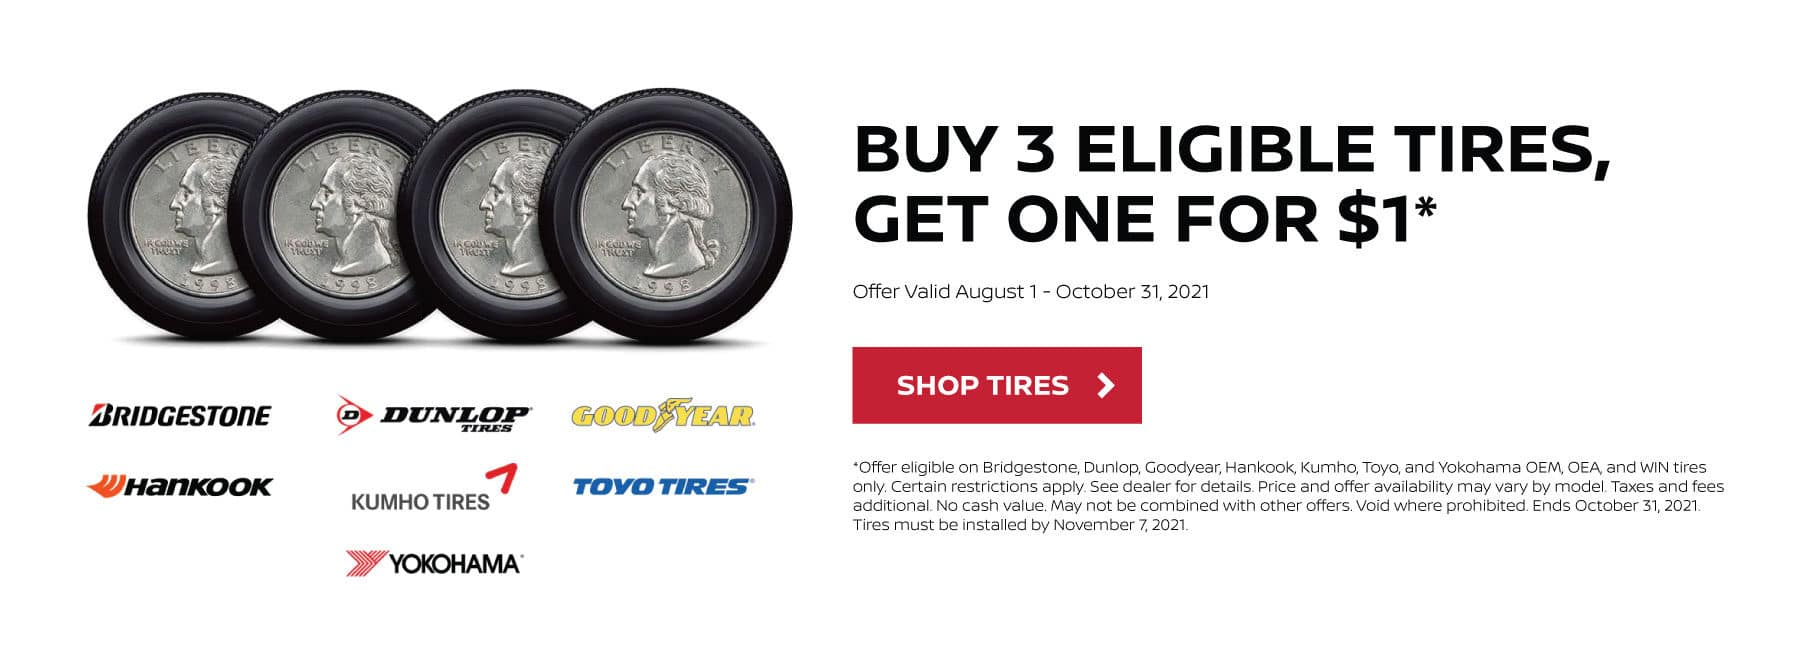 Buy 3 Eligible Tires, Get One For $1